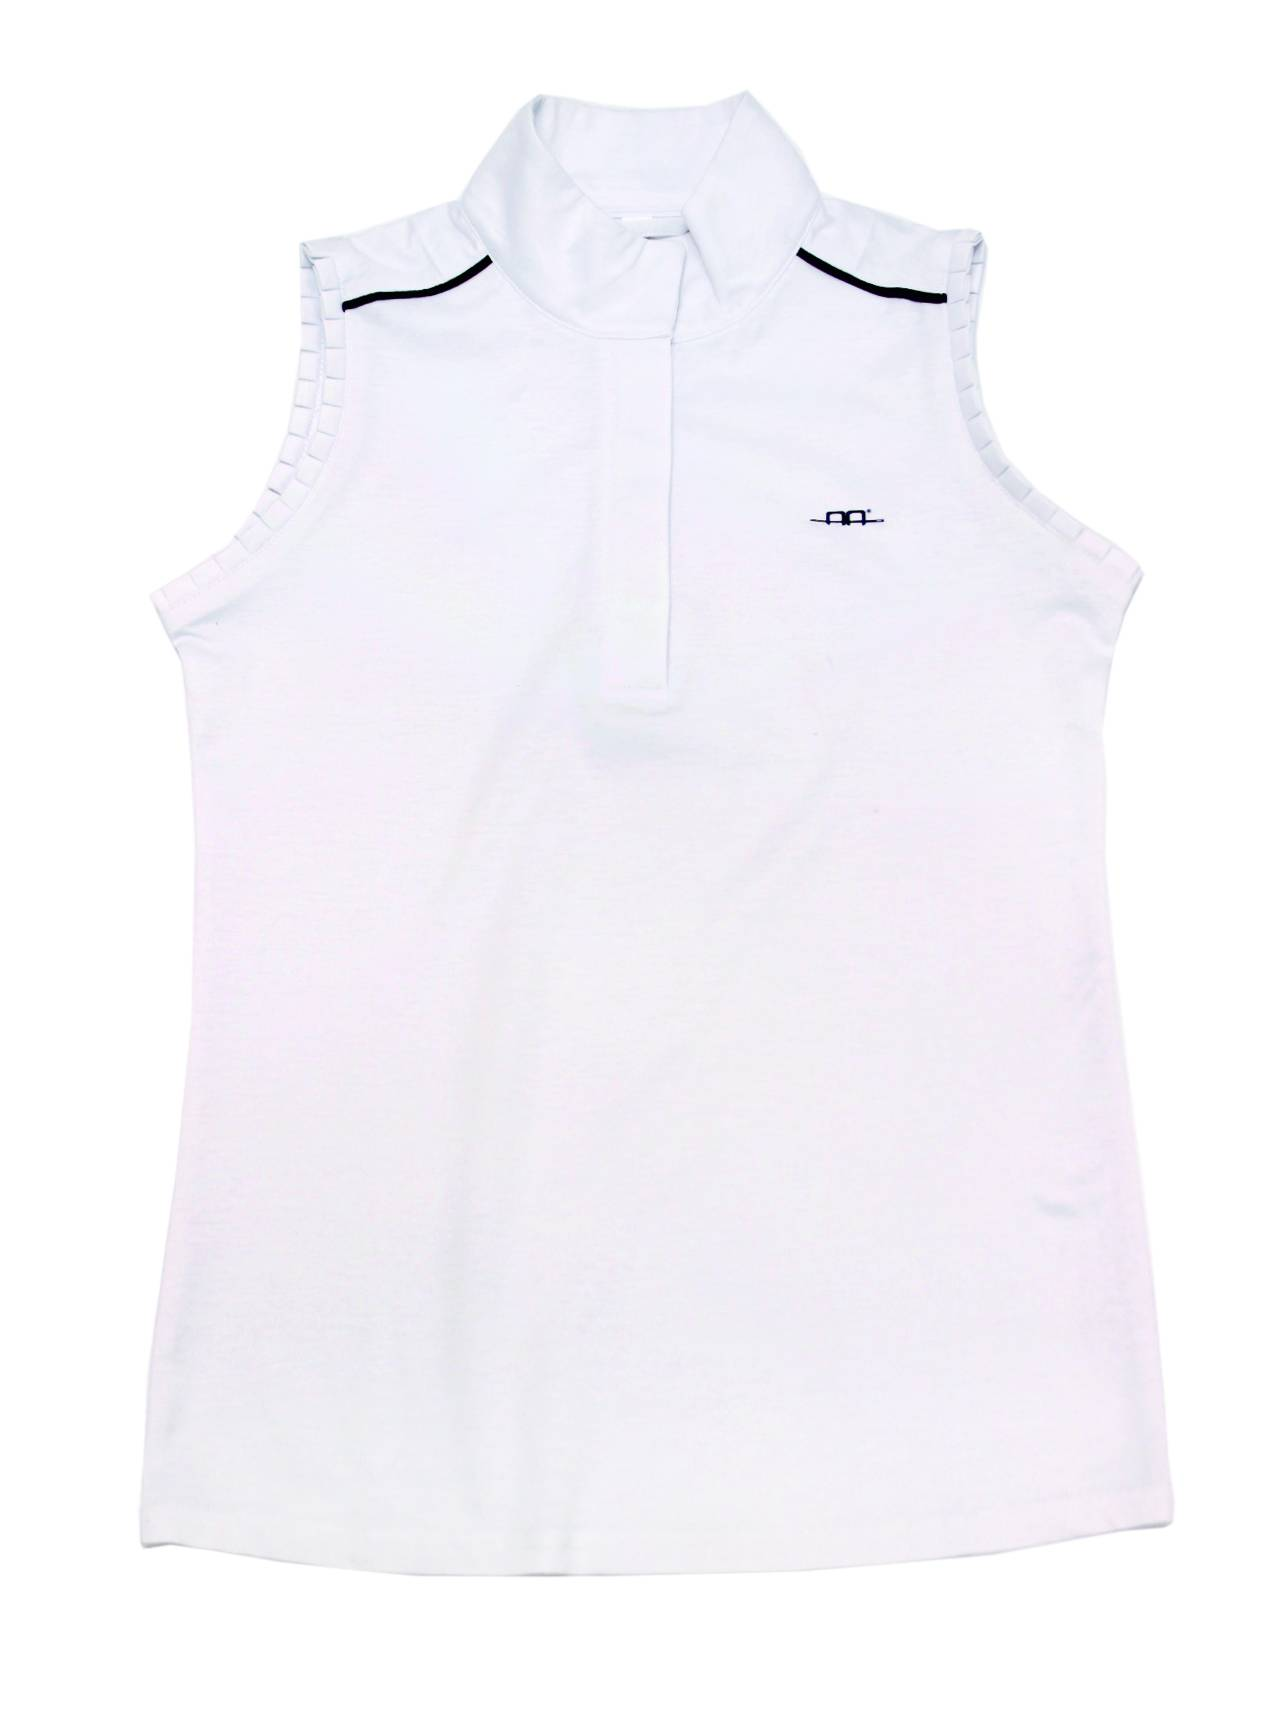 Horseware Monza Sleeveless Top - Ladies